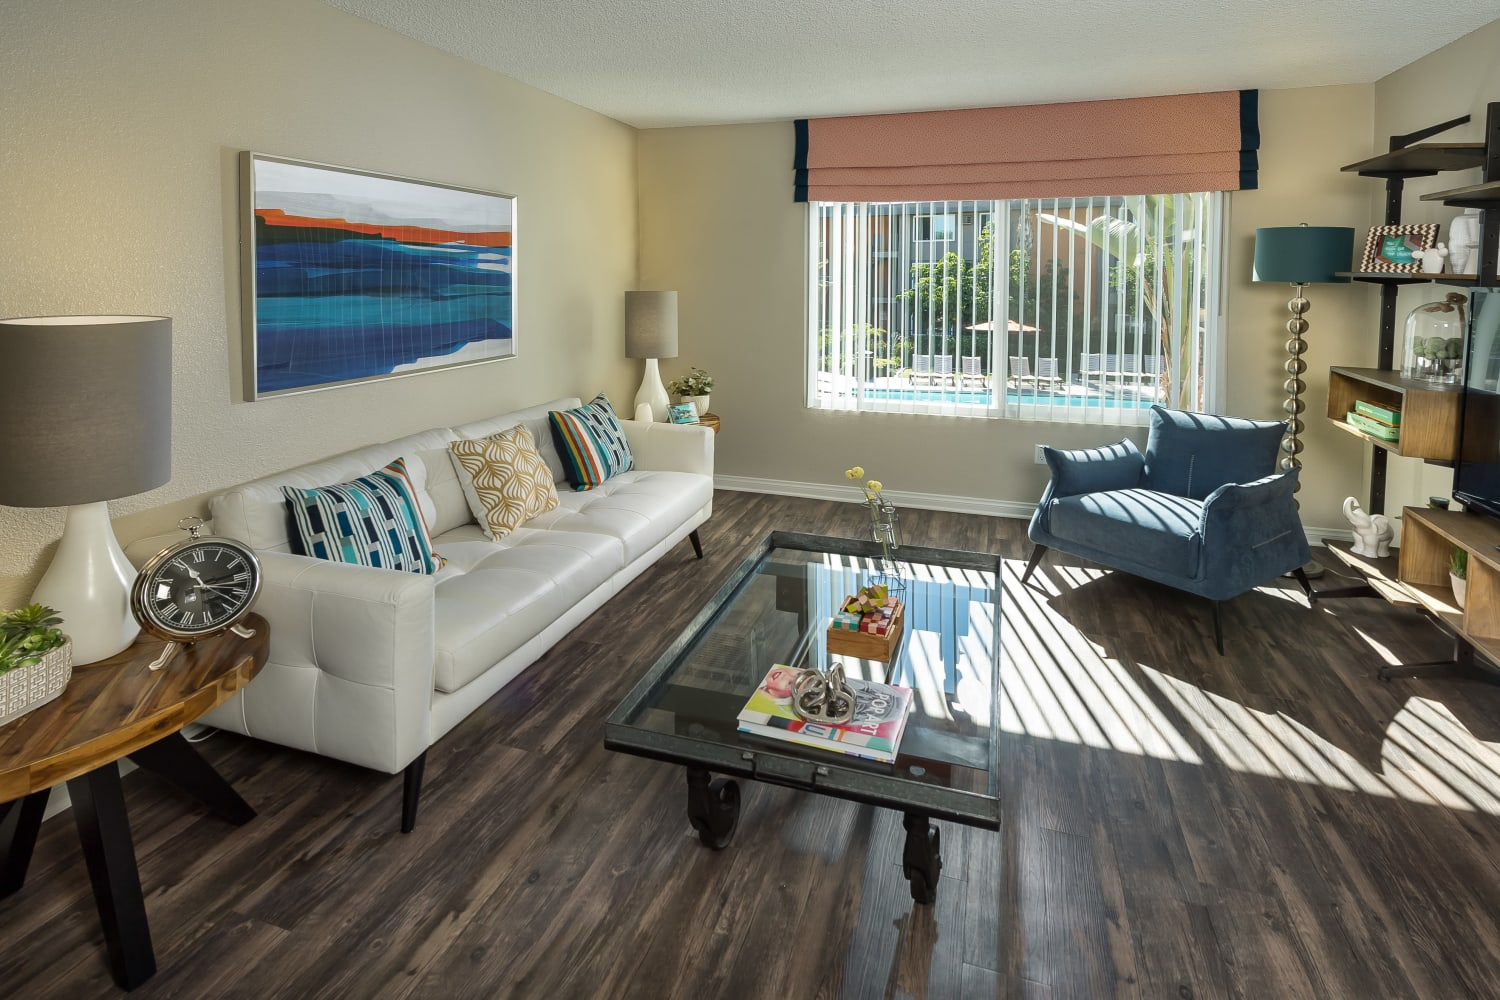 Living room at UCA Apartment Homes in Fullerton, California